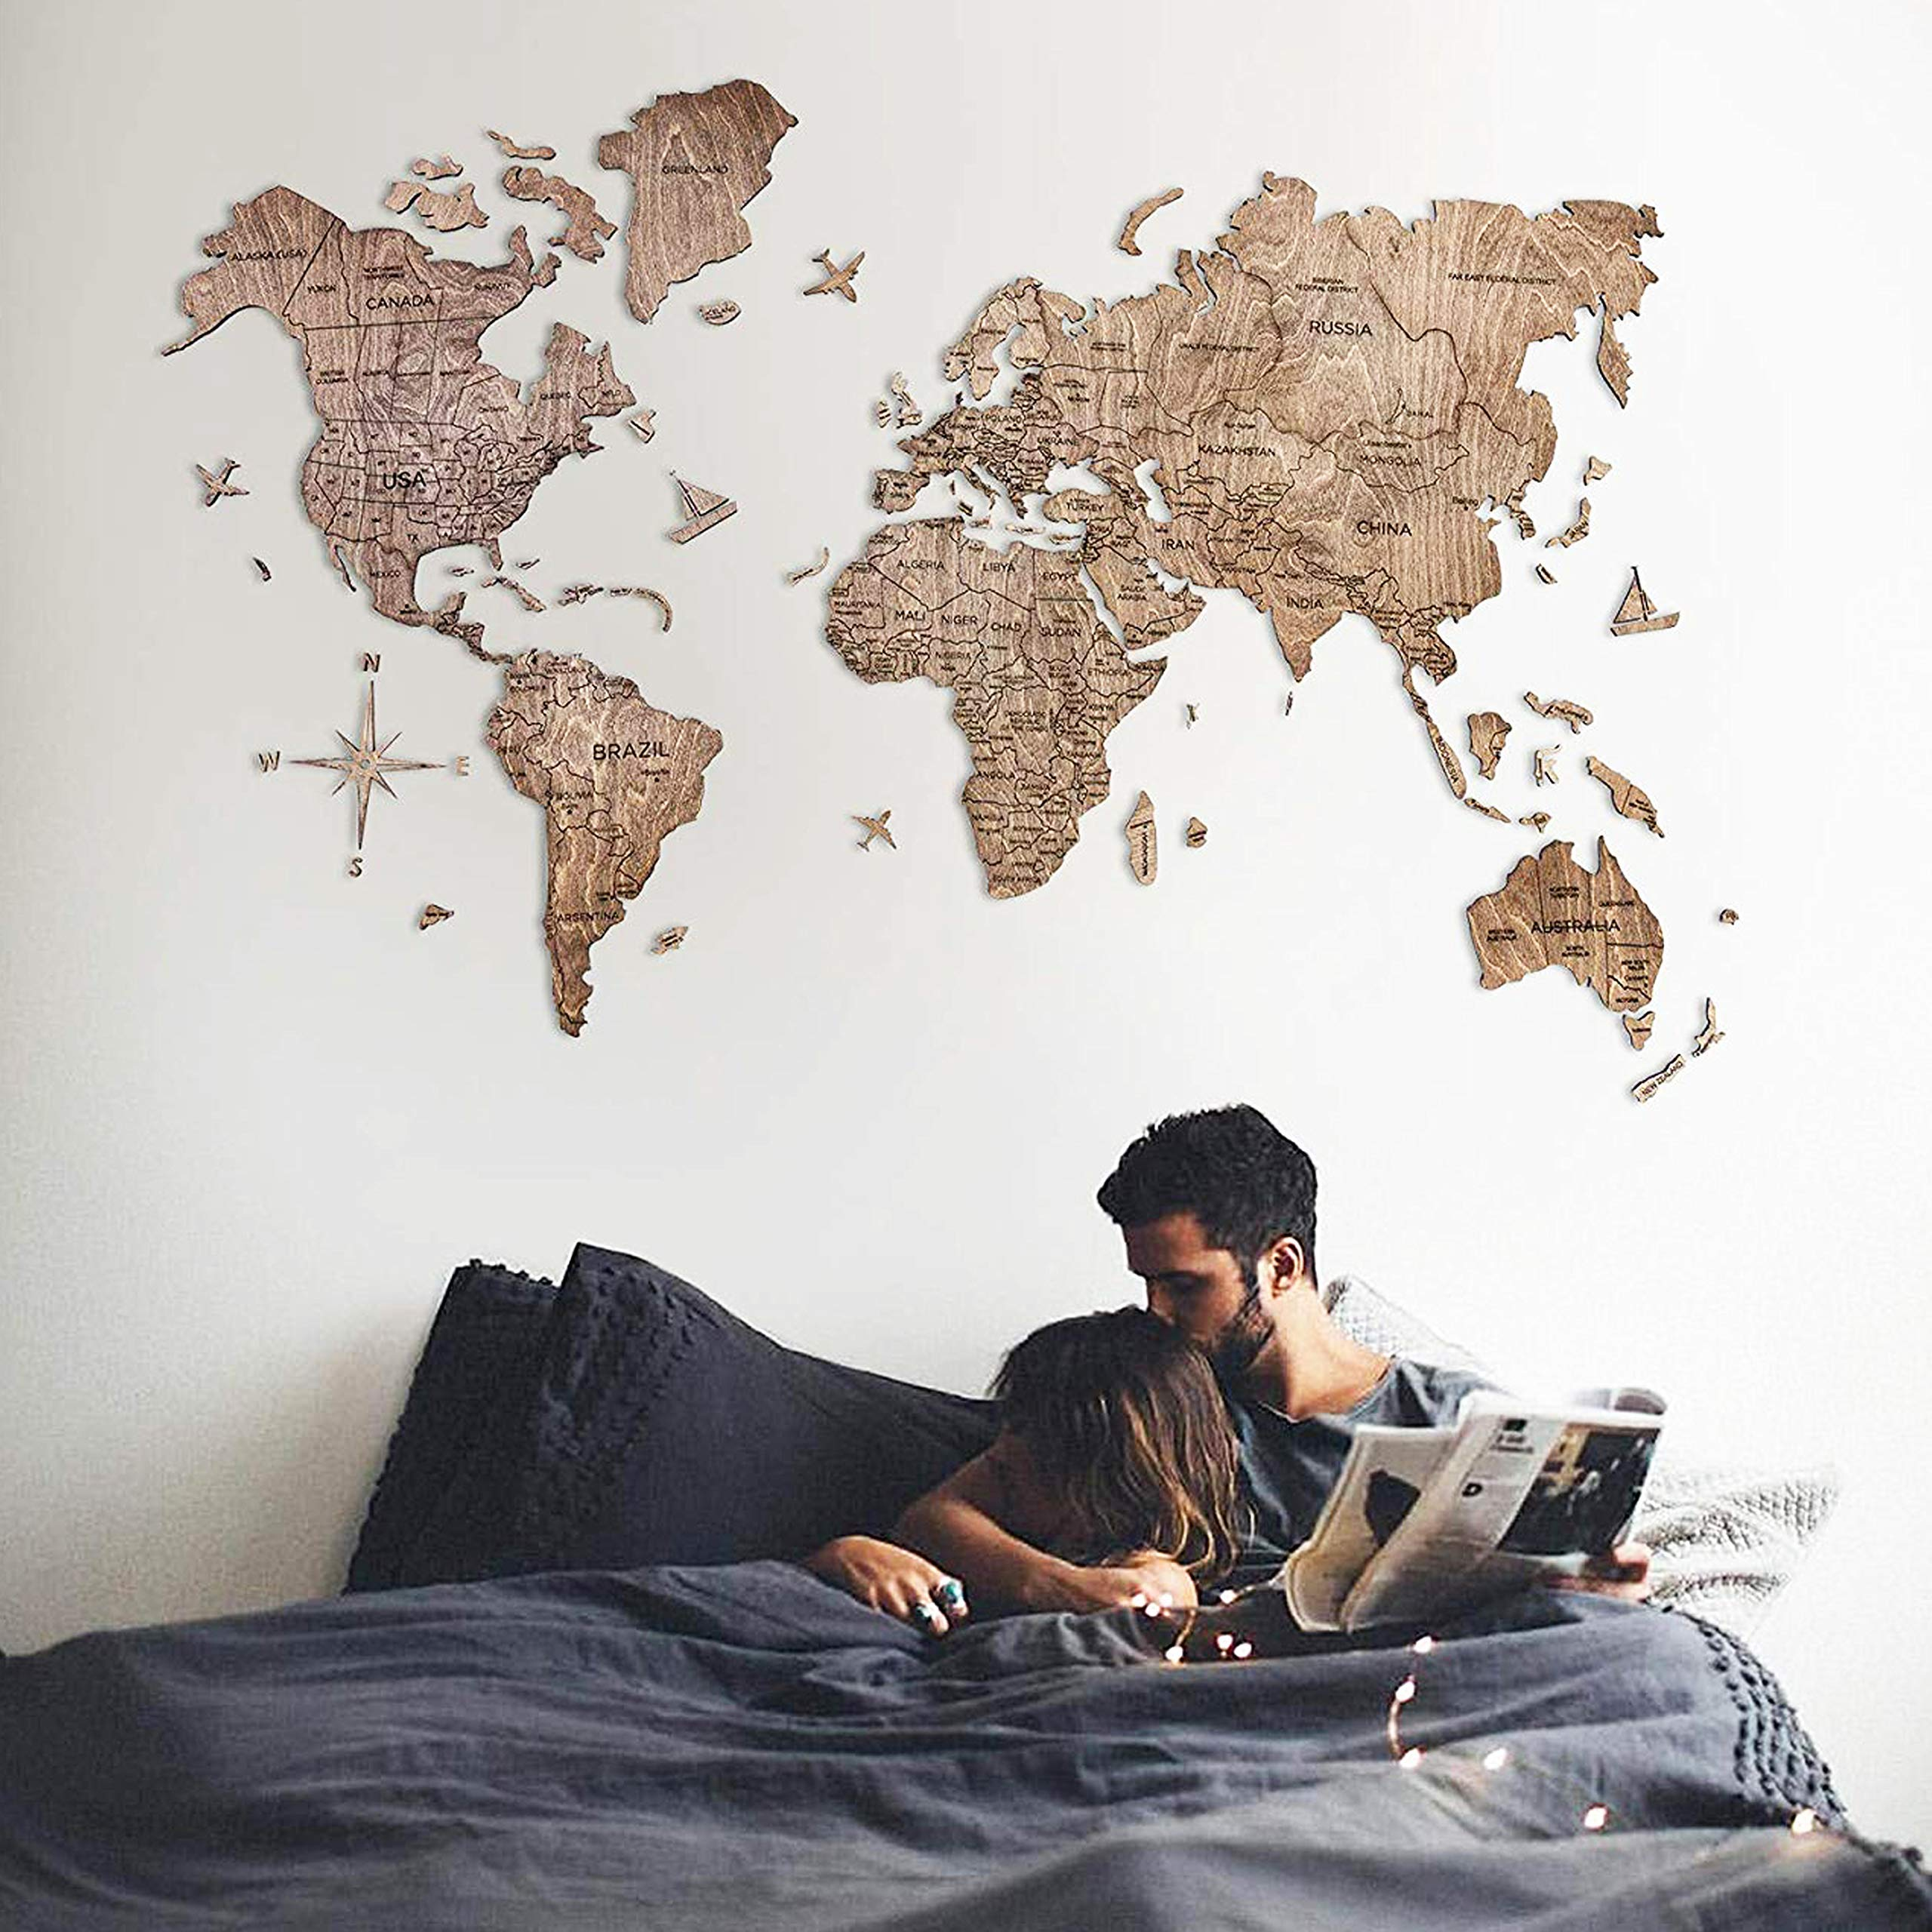 World Map Wood Wall Decor With Pins Larg Buy Online In Canada At Desertcart